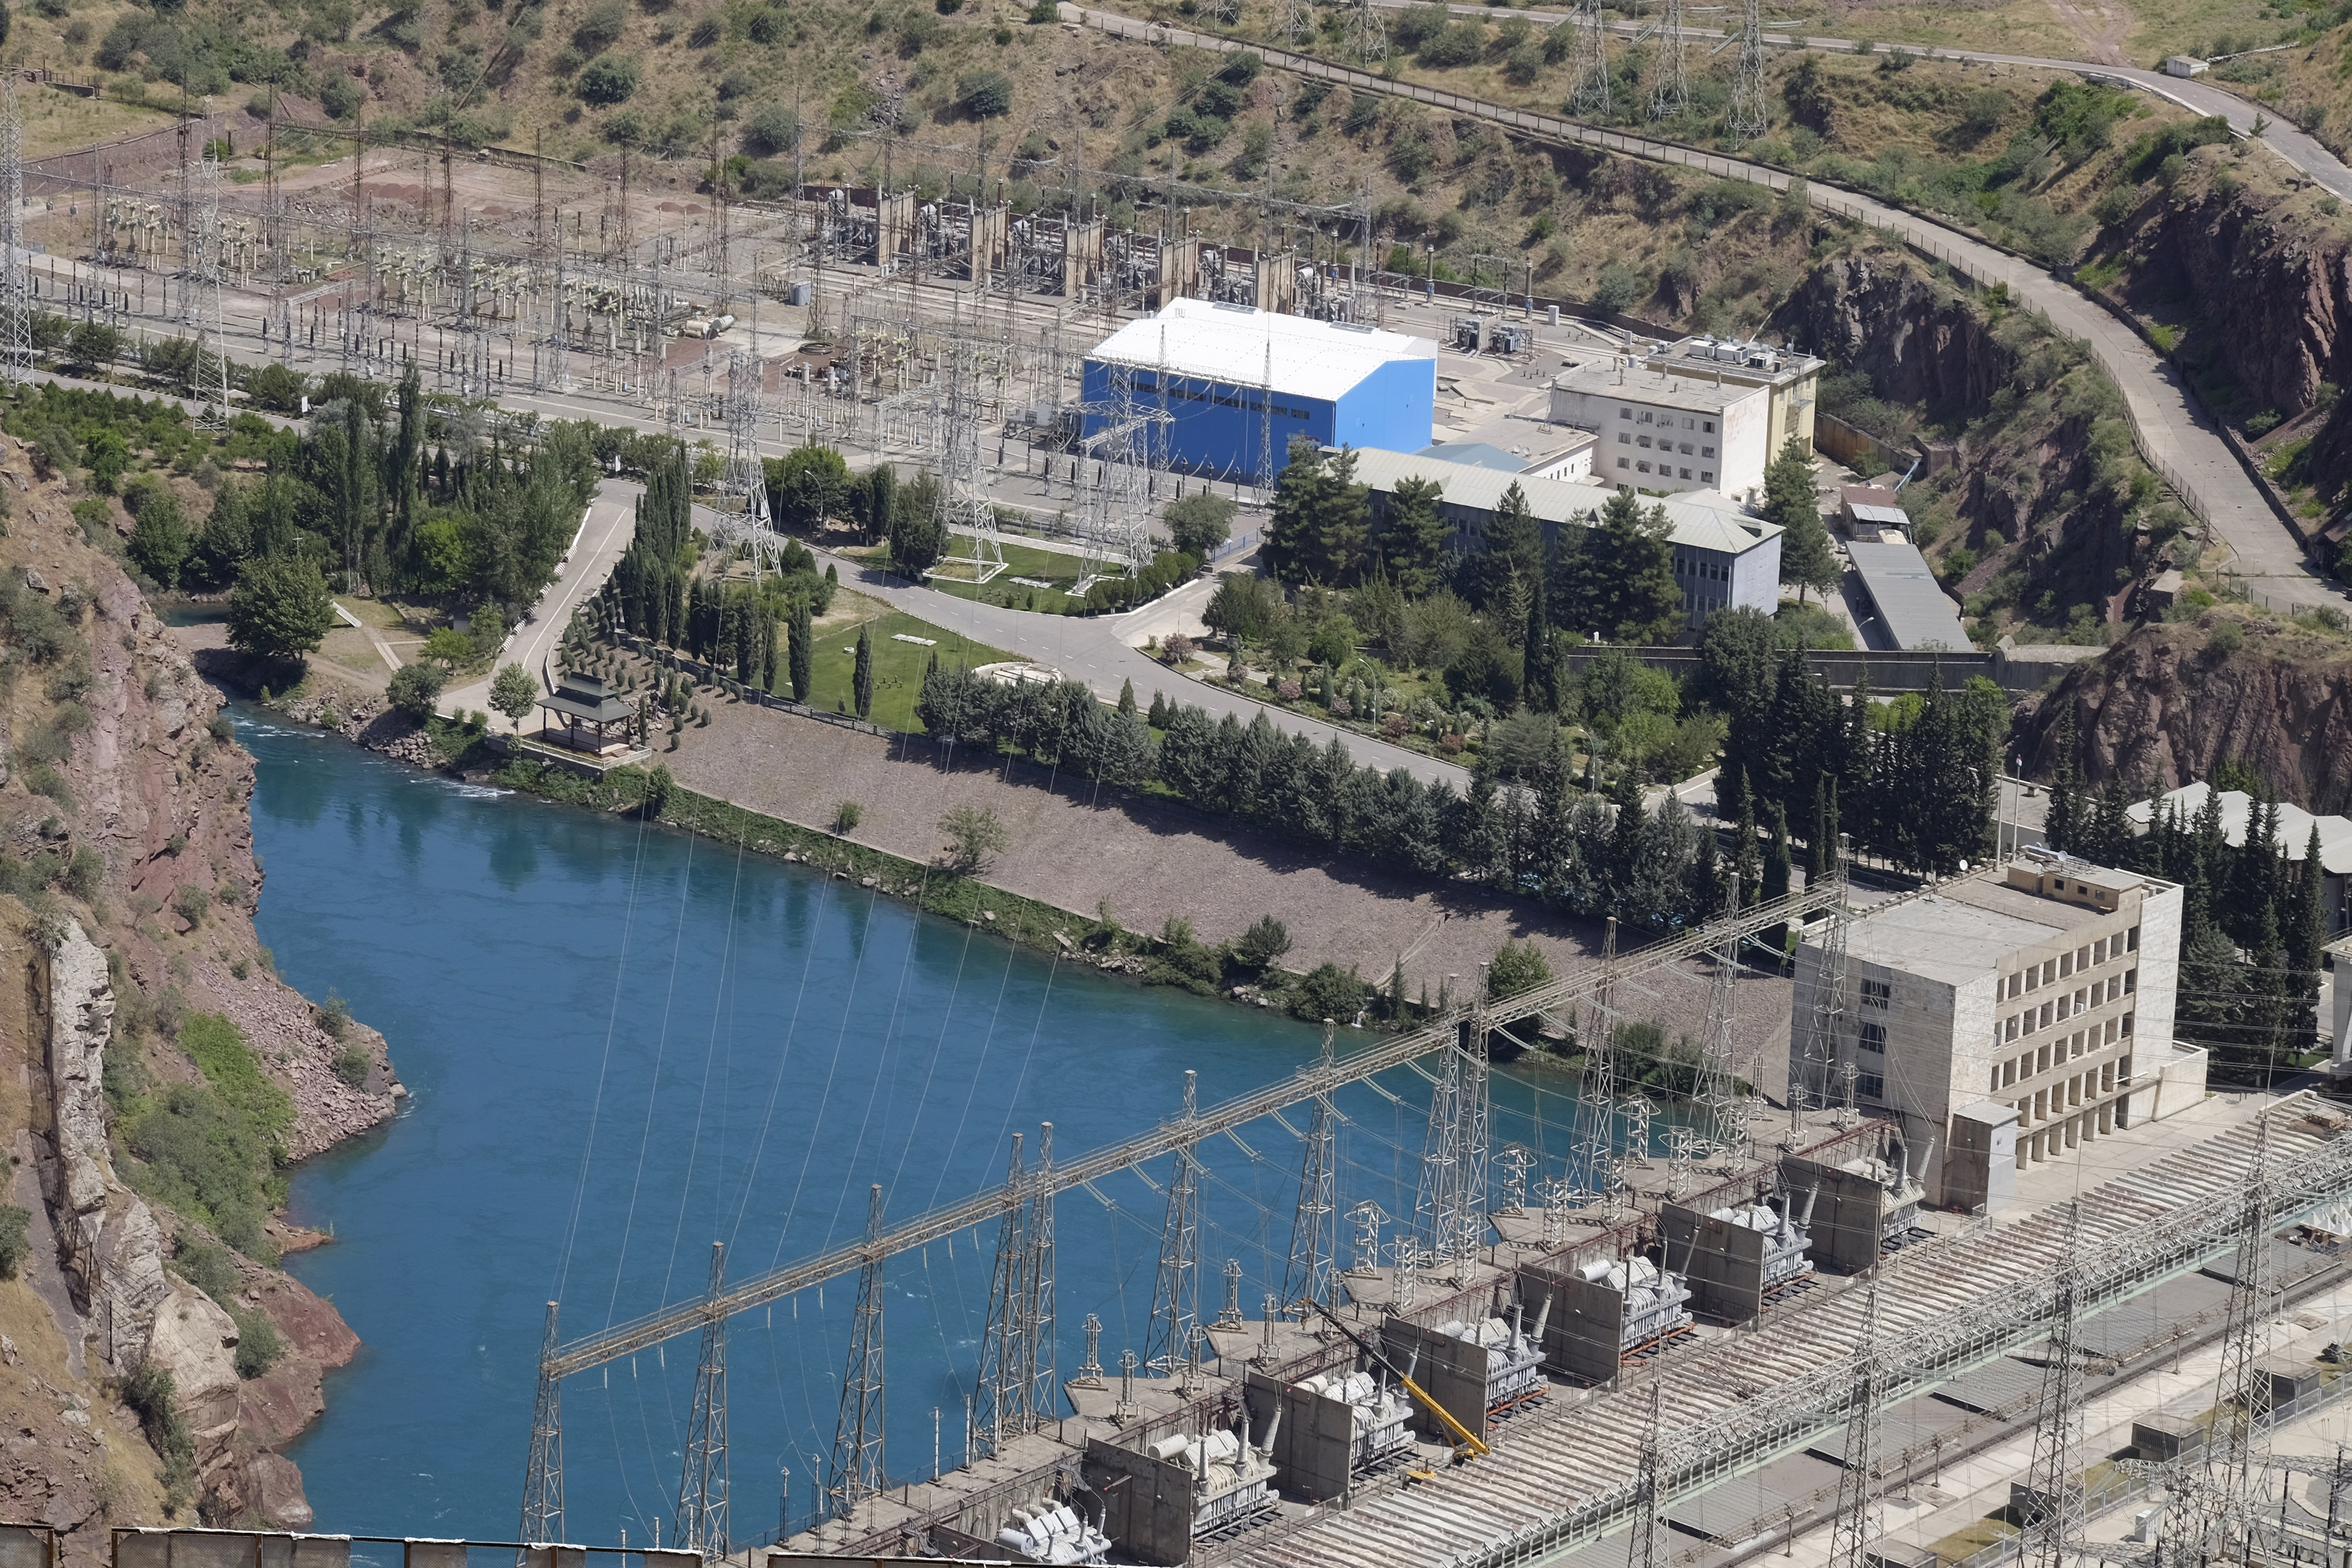 An aerial view of the Nurek hydropower plant seen in the summer of 2018. (Photo: Eurasianet)